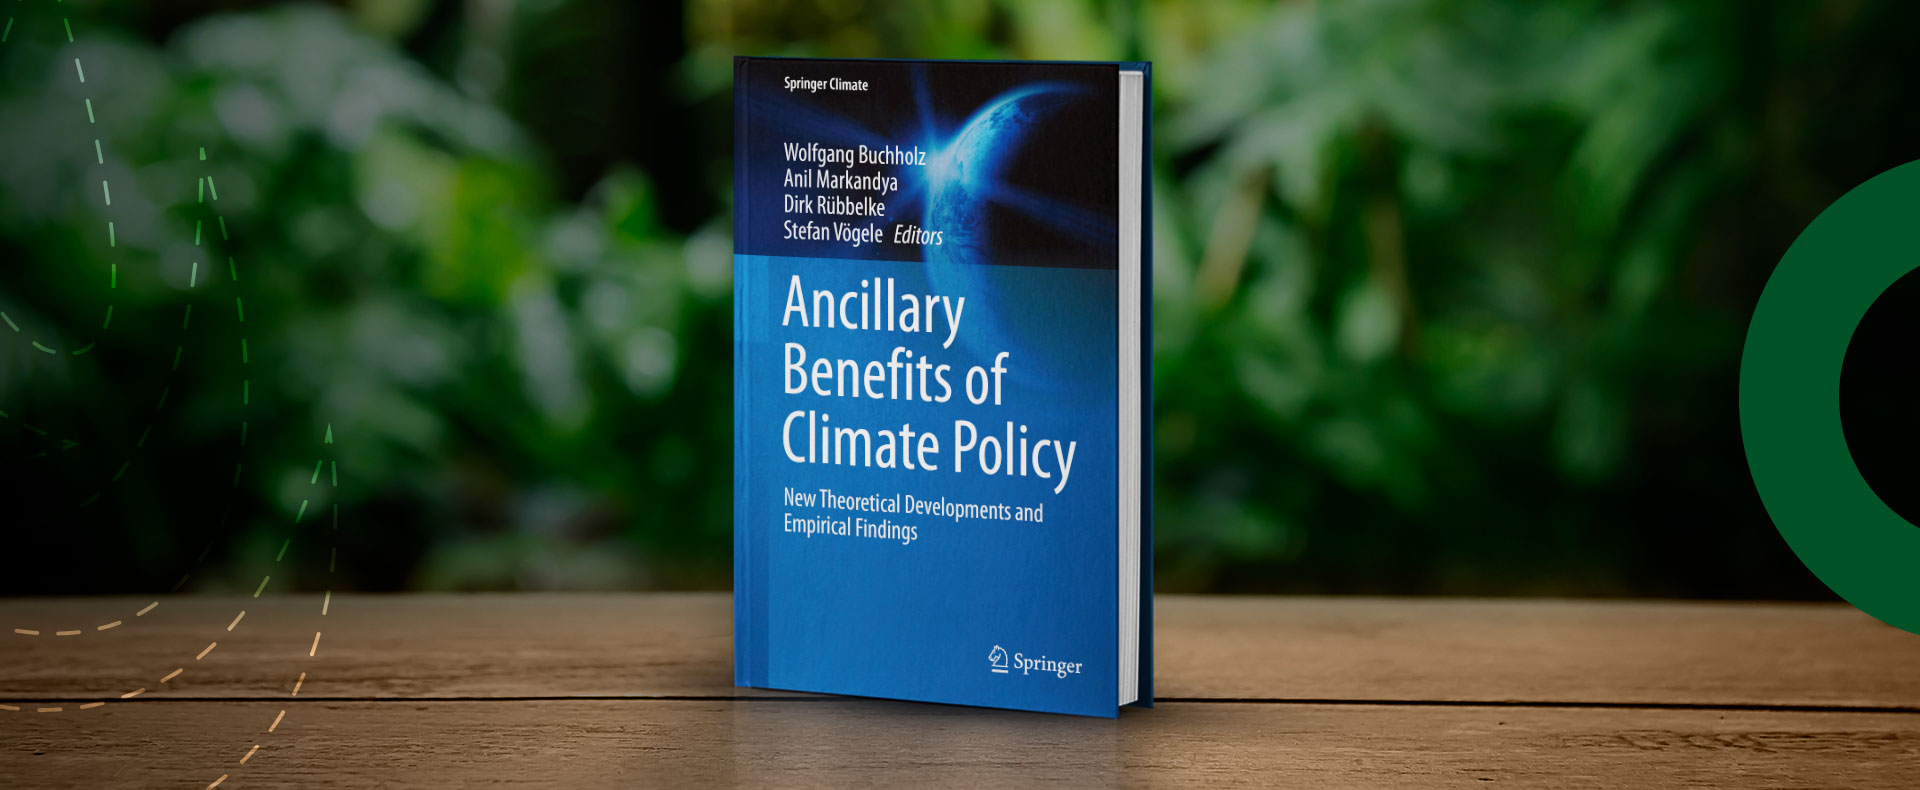 Livro Climate Change and Ancillary Benefits